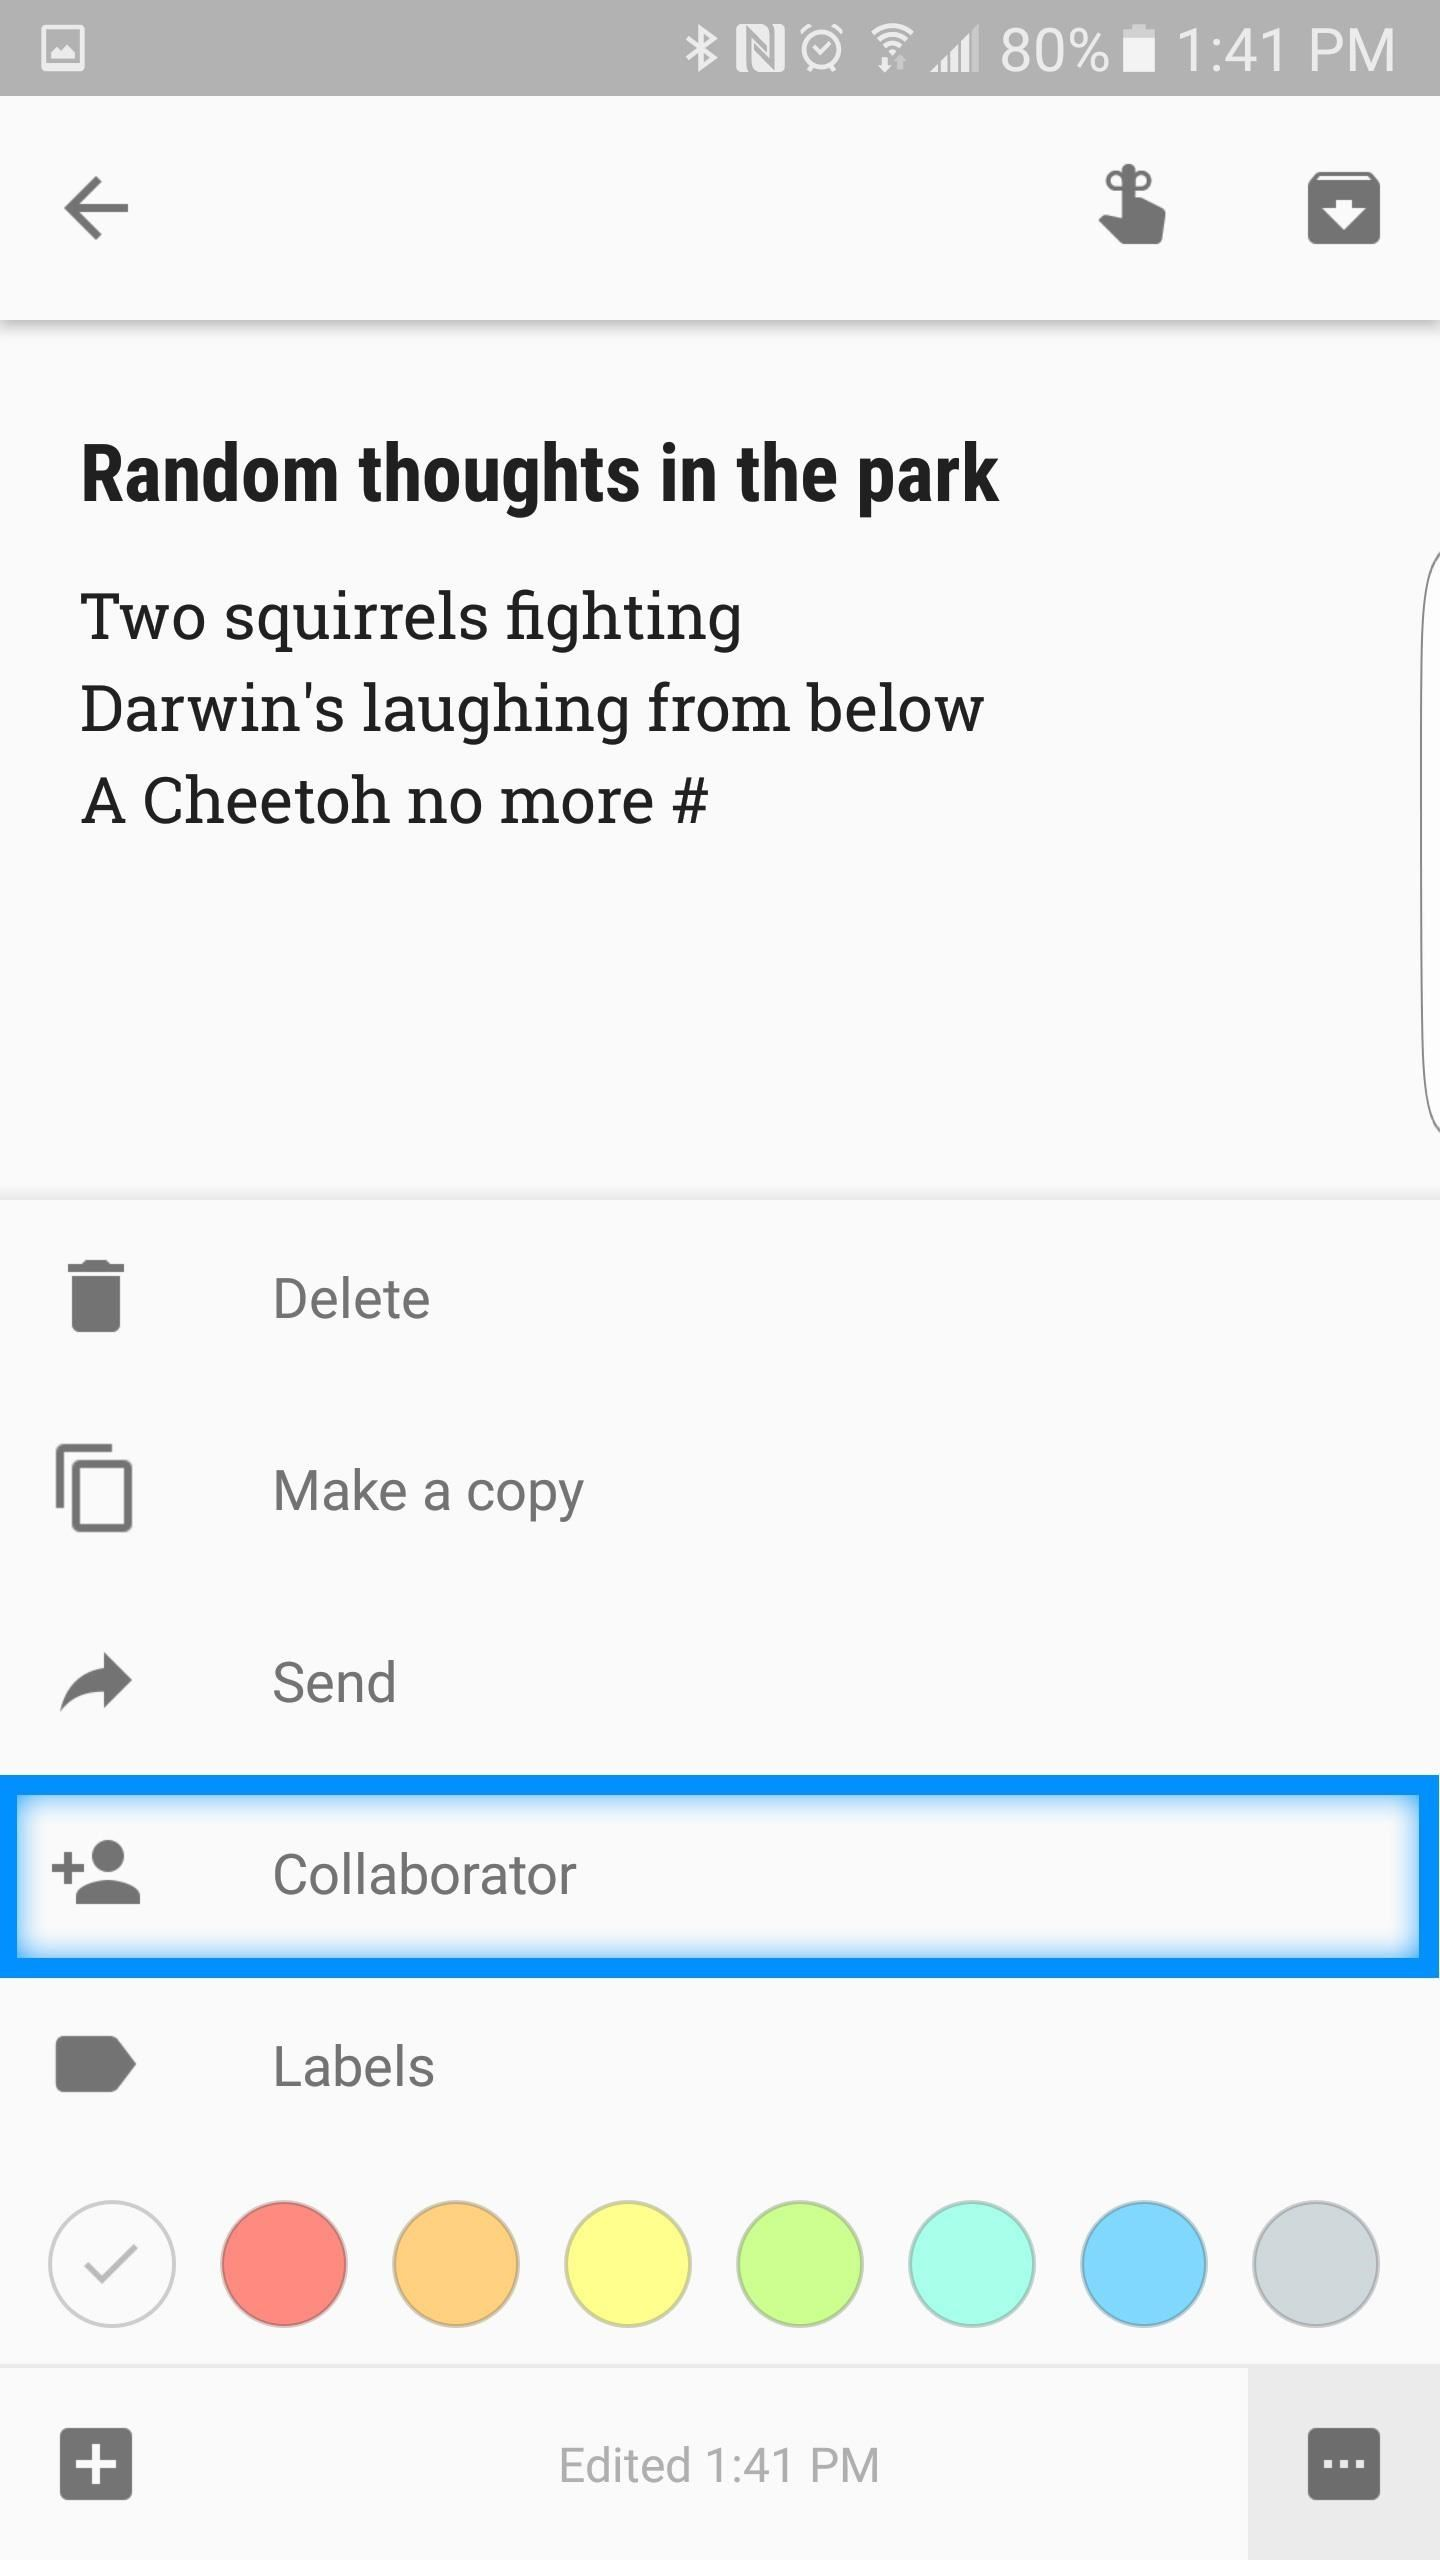 10 Must-Know Tips for Better Note-Taking with Google Keep